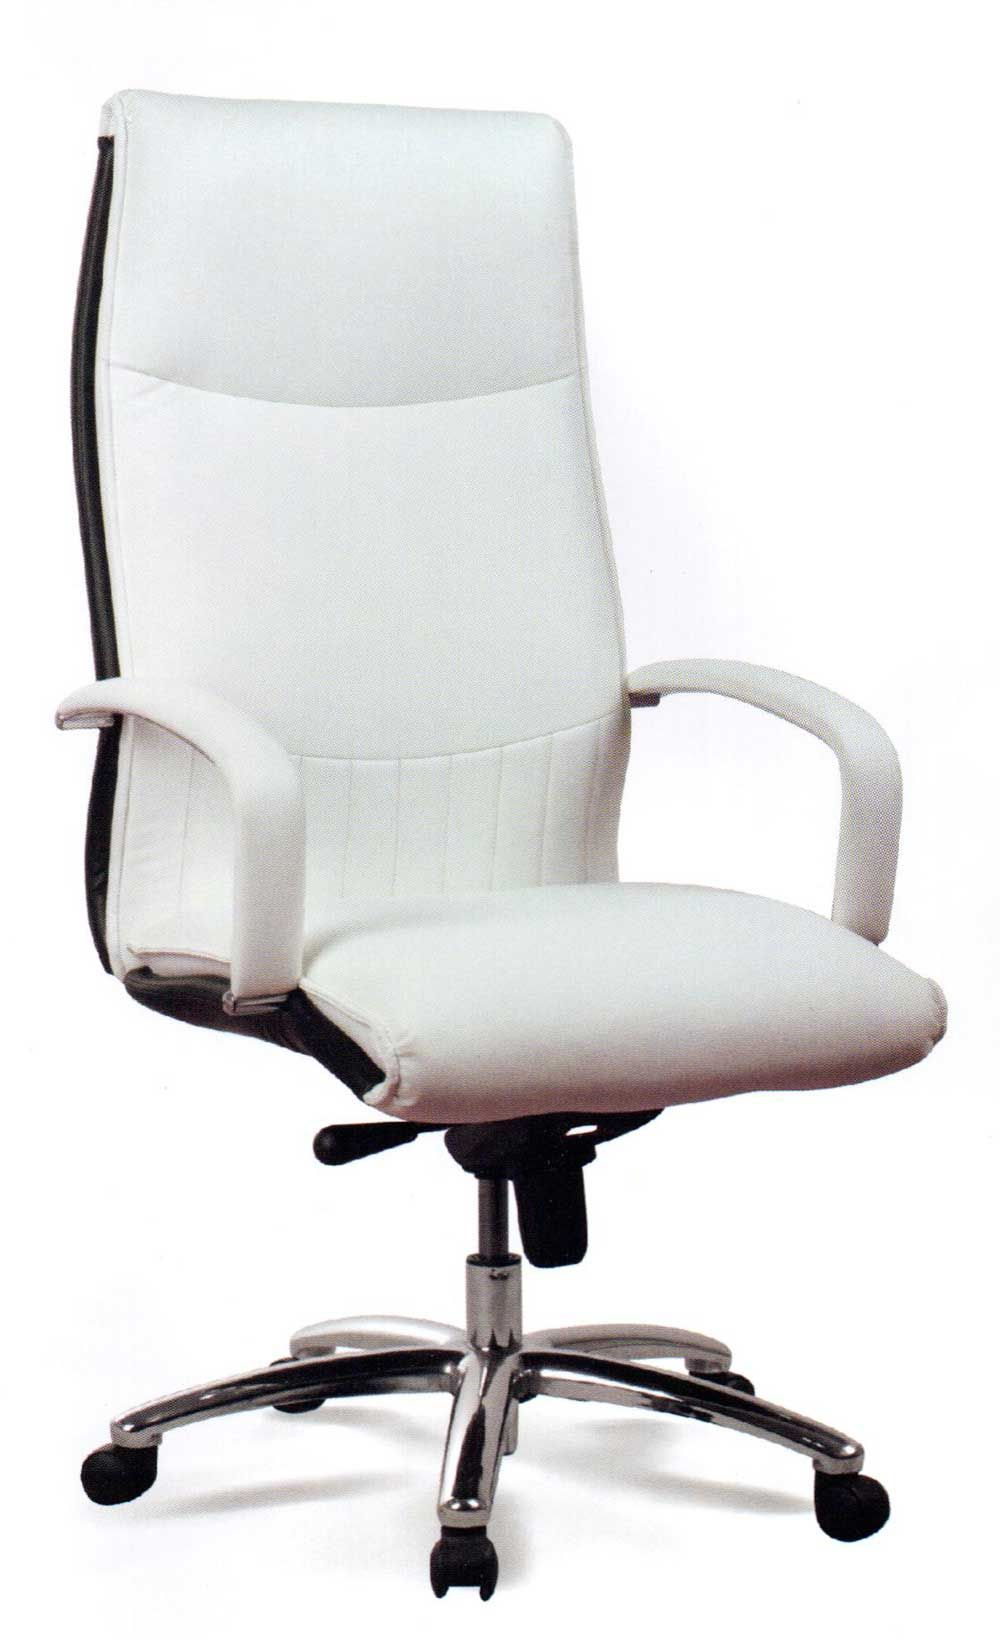 White Desk Chair For Home Office: White Desk Chair Leather Executive ~  Design Inspiration